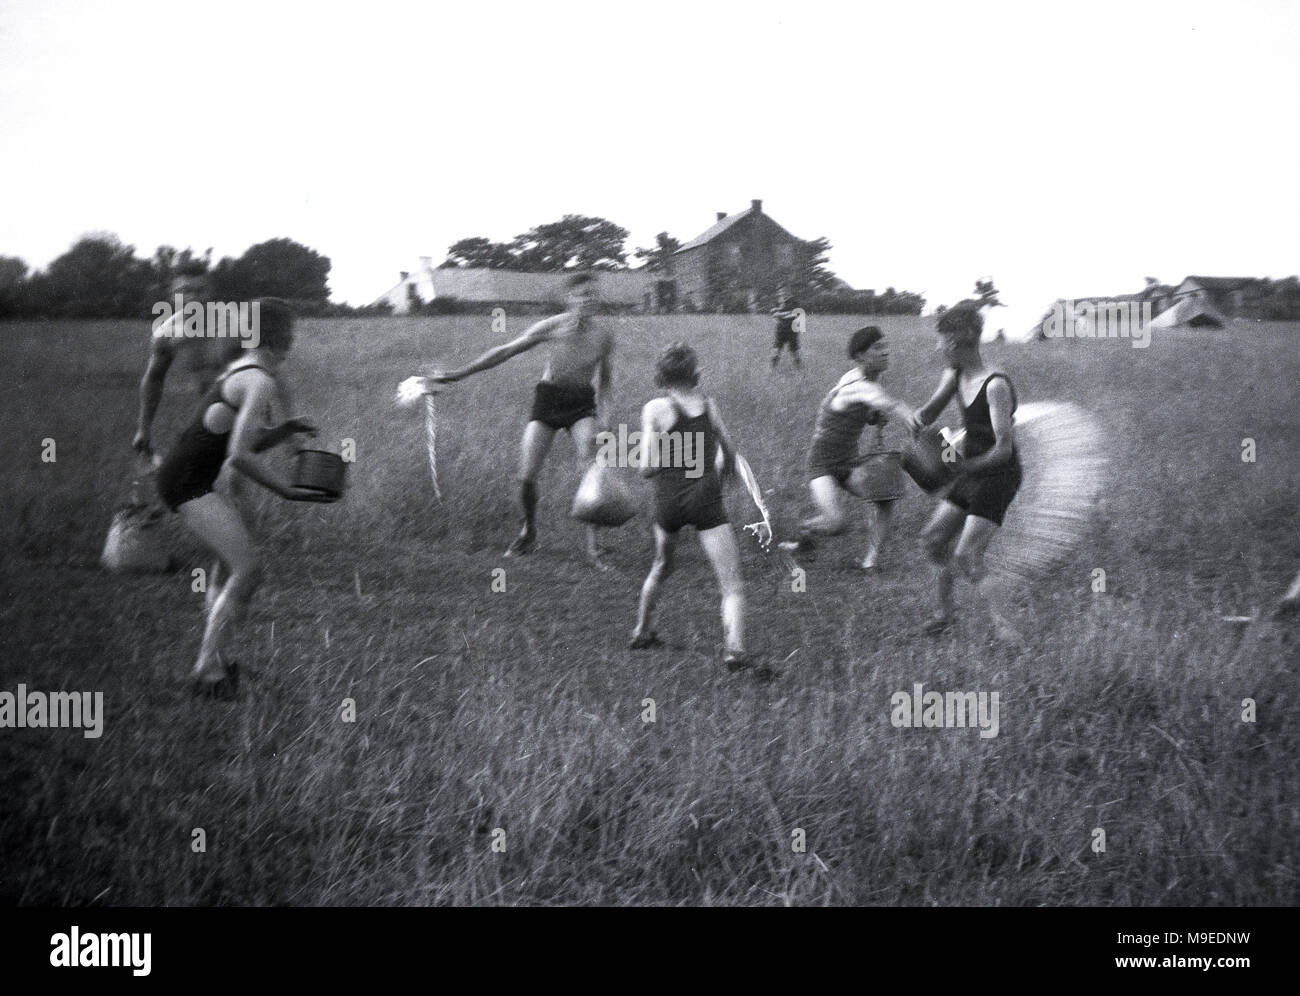 1934, historical, scout camp in Dublin, Ireland, boy scouts outside having fun with a water fight in a grassy field at their camp site. - Stock Image